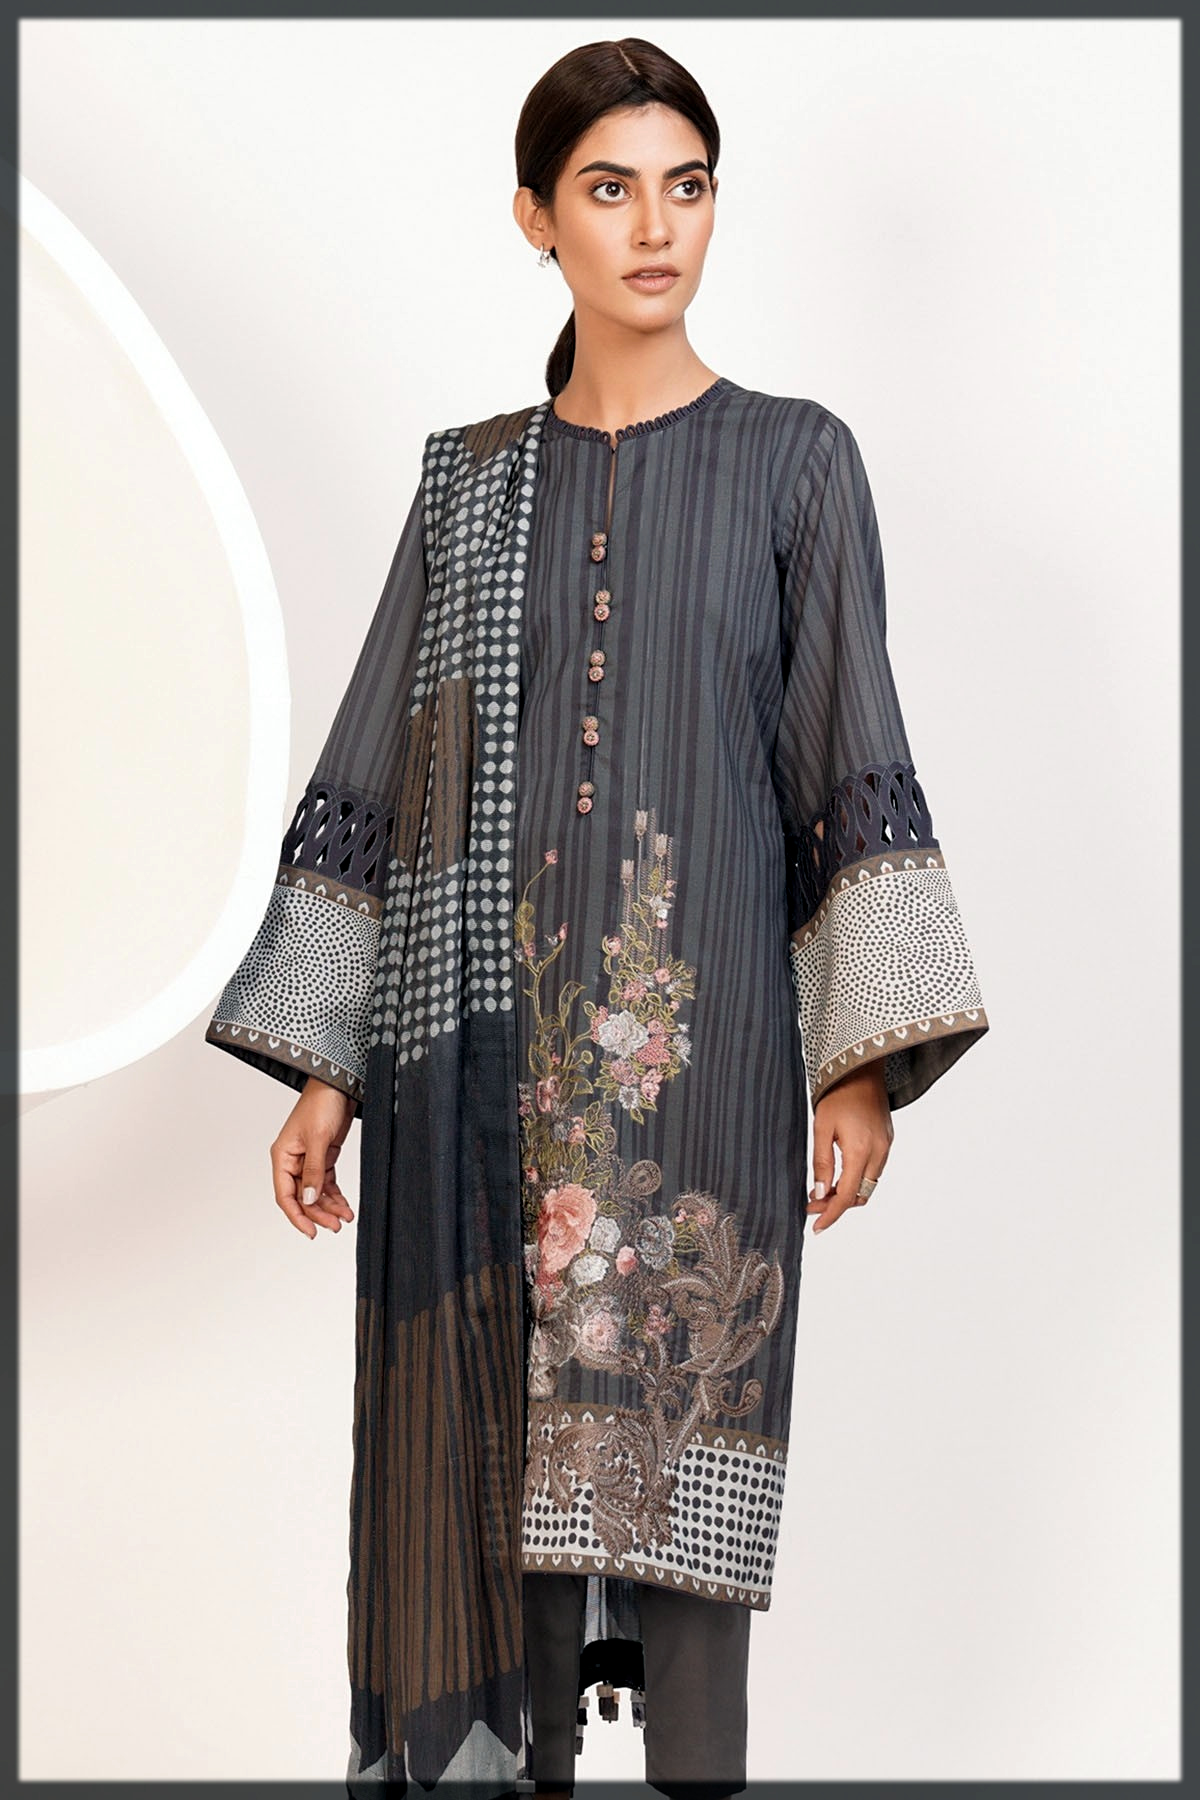 dazzling summer outfit by alkaram